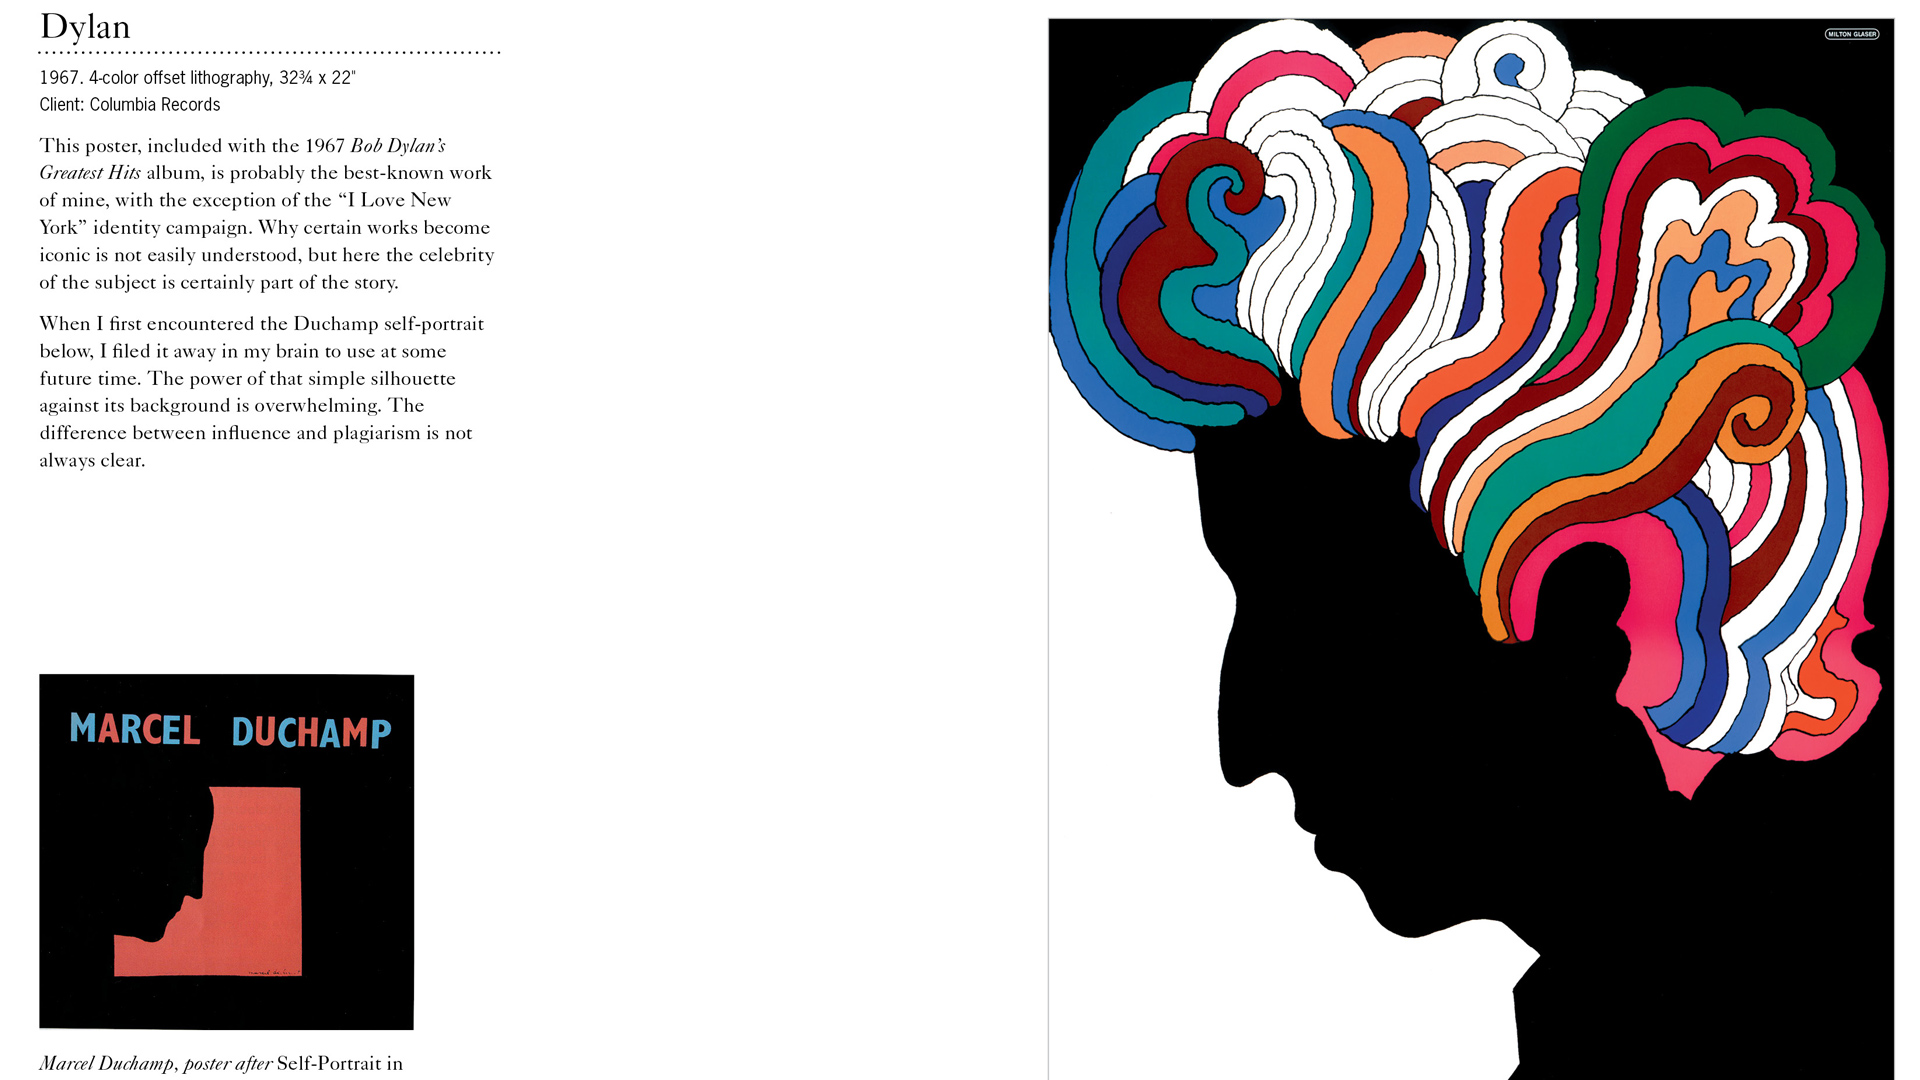 1920x1080 Milton Glaser And Design Are Not The Same